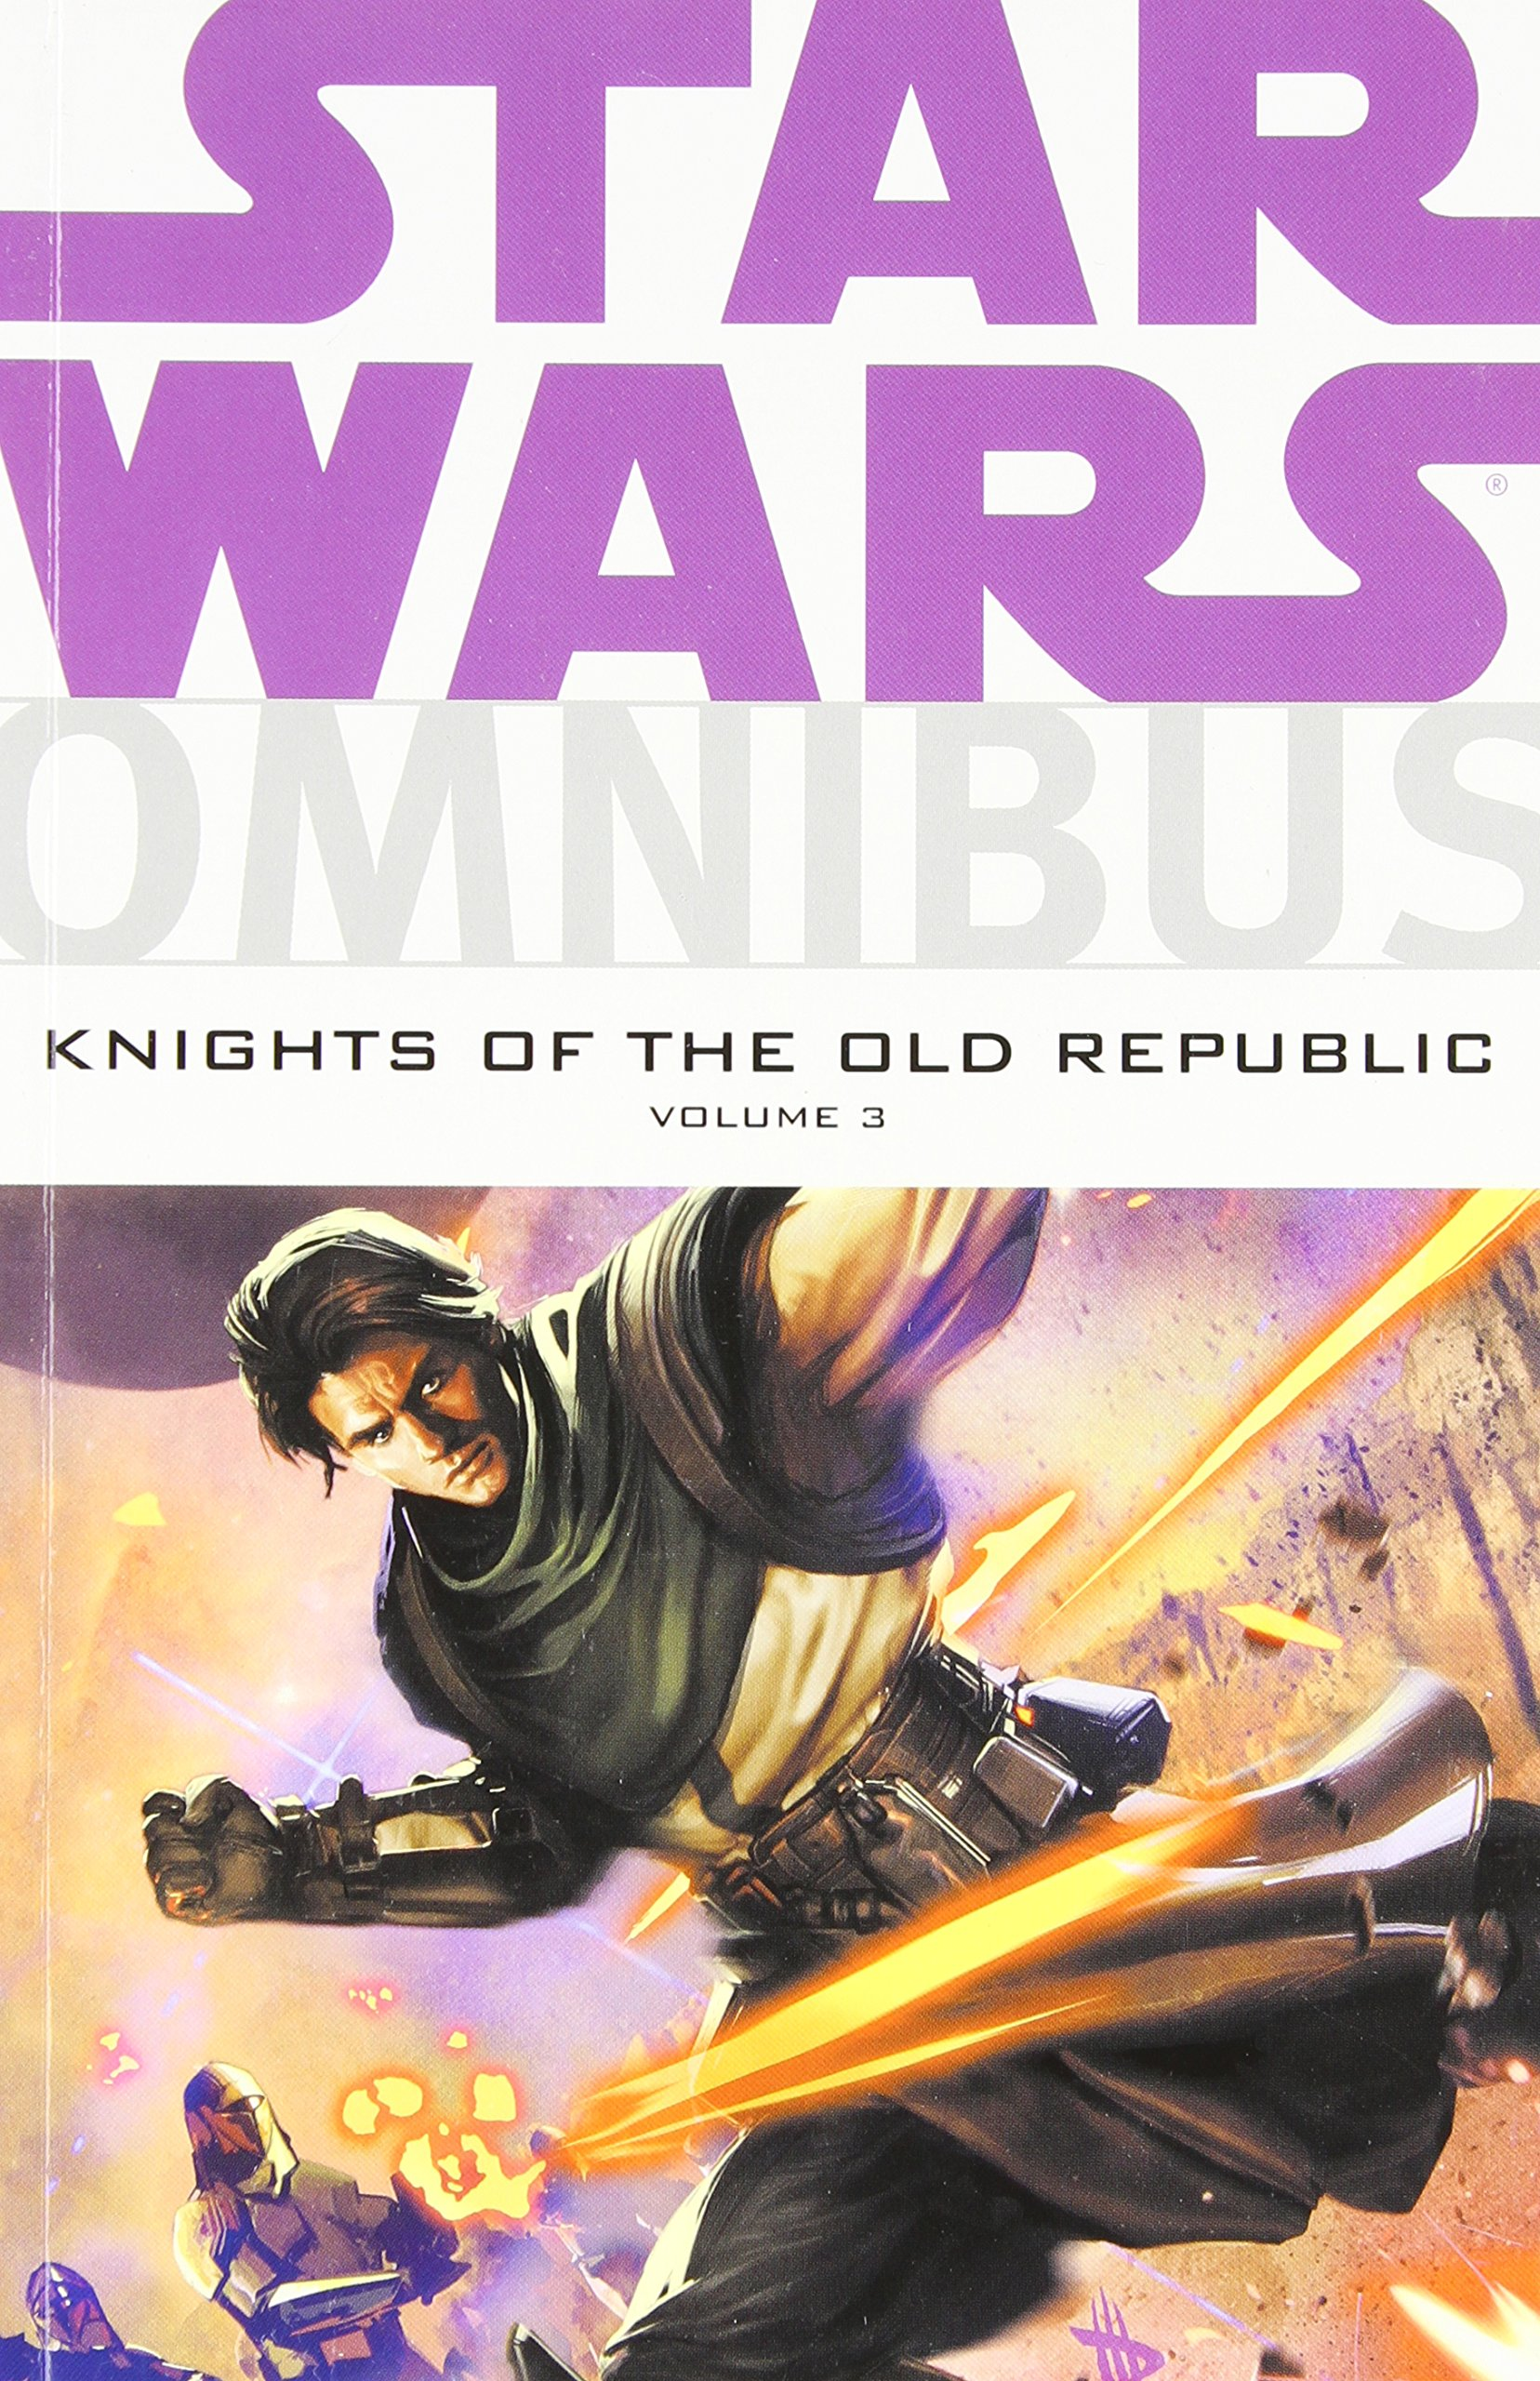 Star Wars Omnibus: Knights of the Old Republic Volume 3